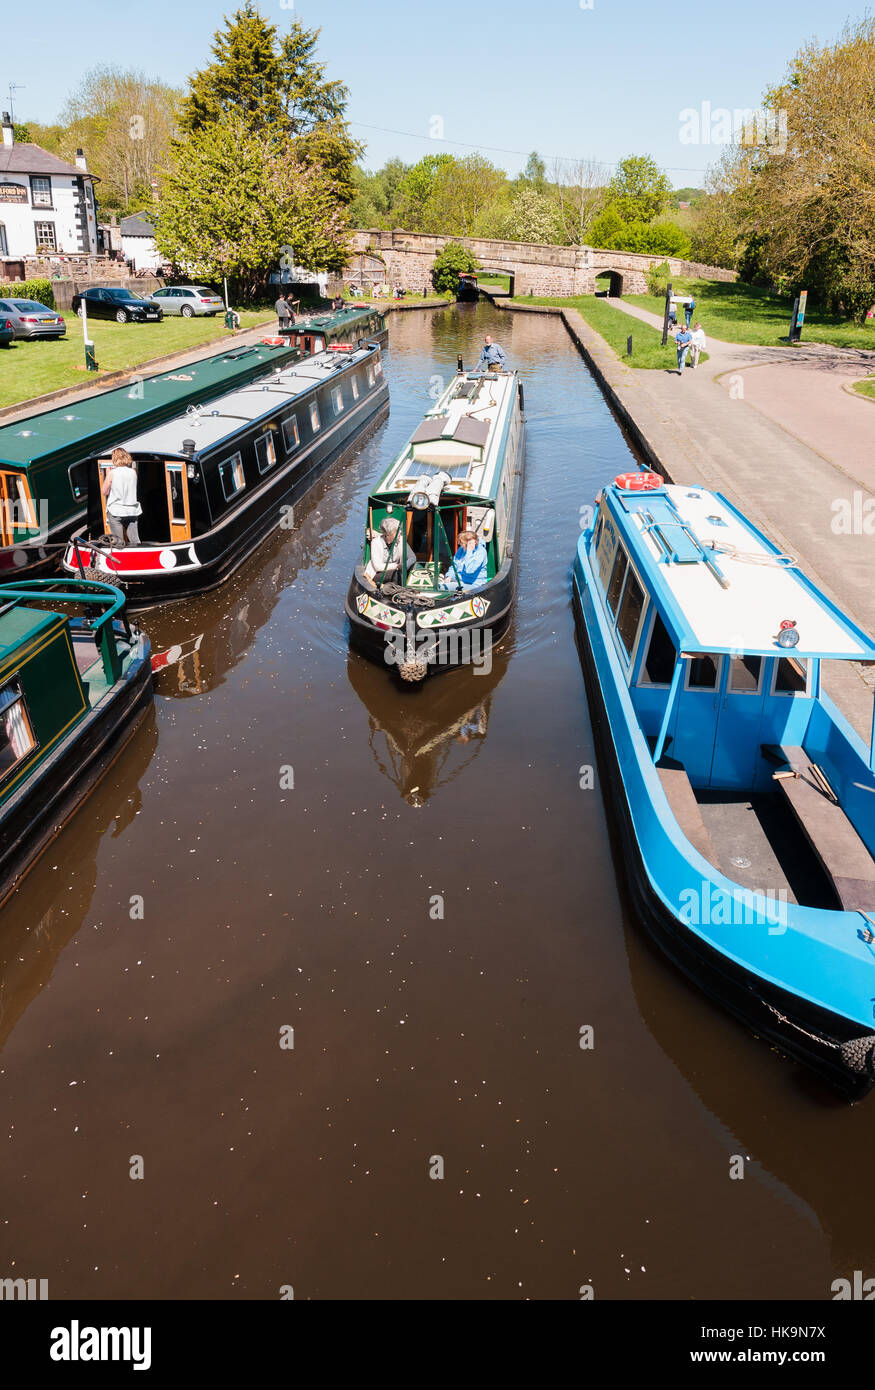 Narrowboats or canal barges on the Llangollen canal near Pontcysyllte a popular type of vacation on the inland waterways - Stock Image